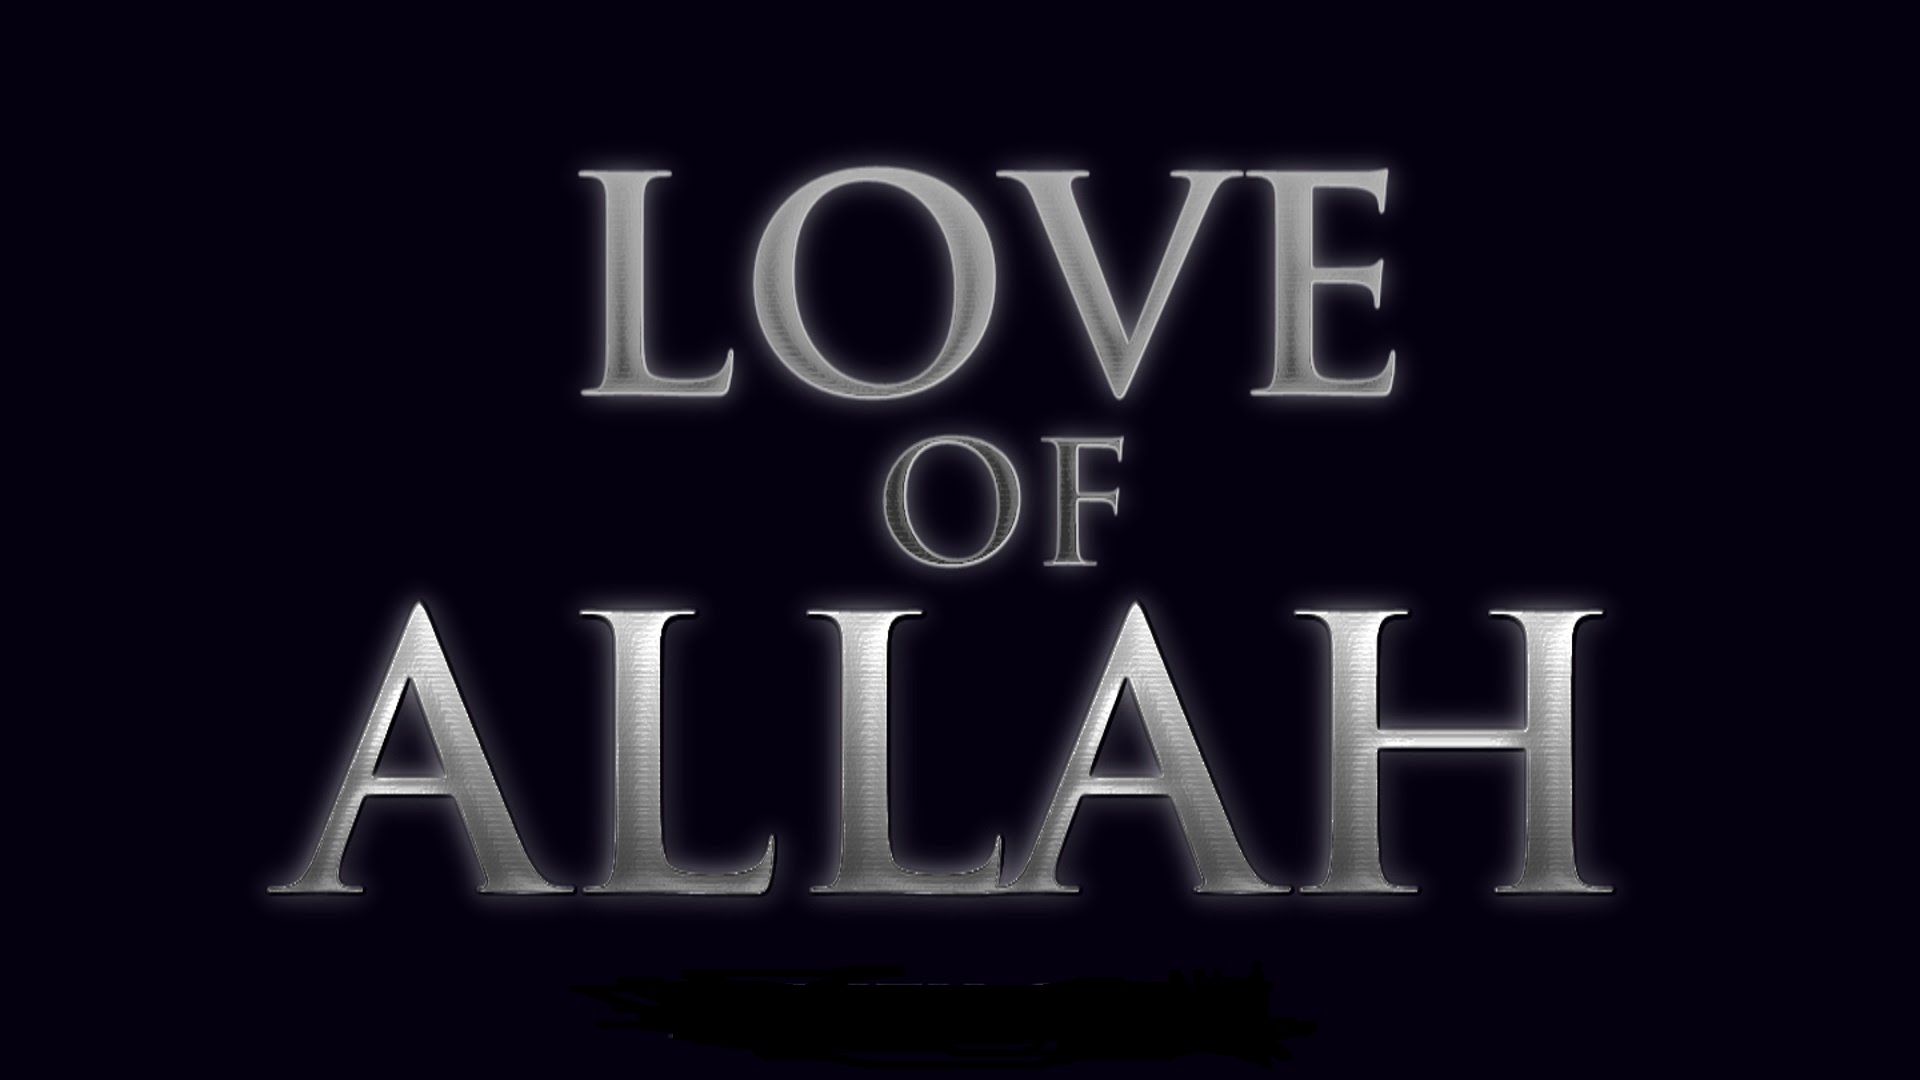 between-love-of-allah-and-love-of-oneself-